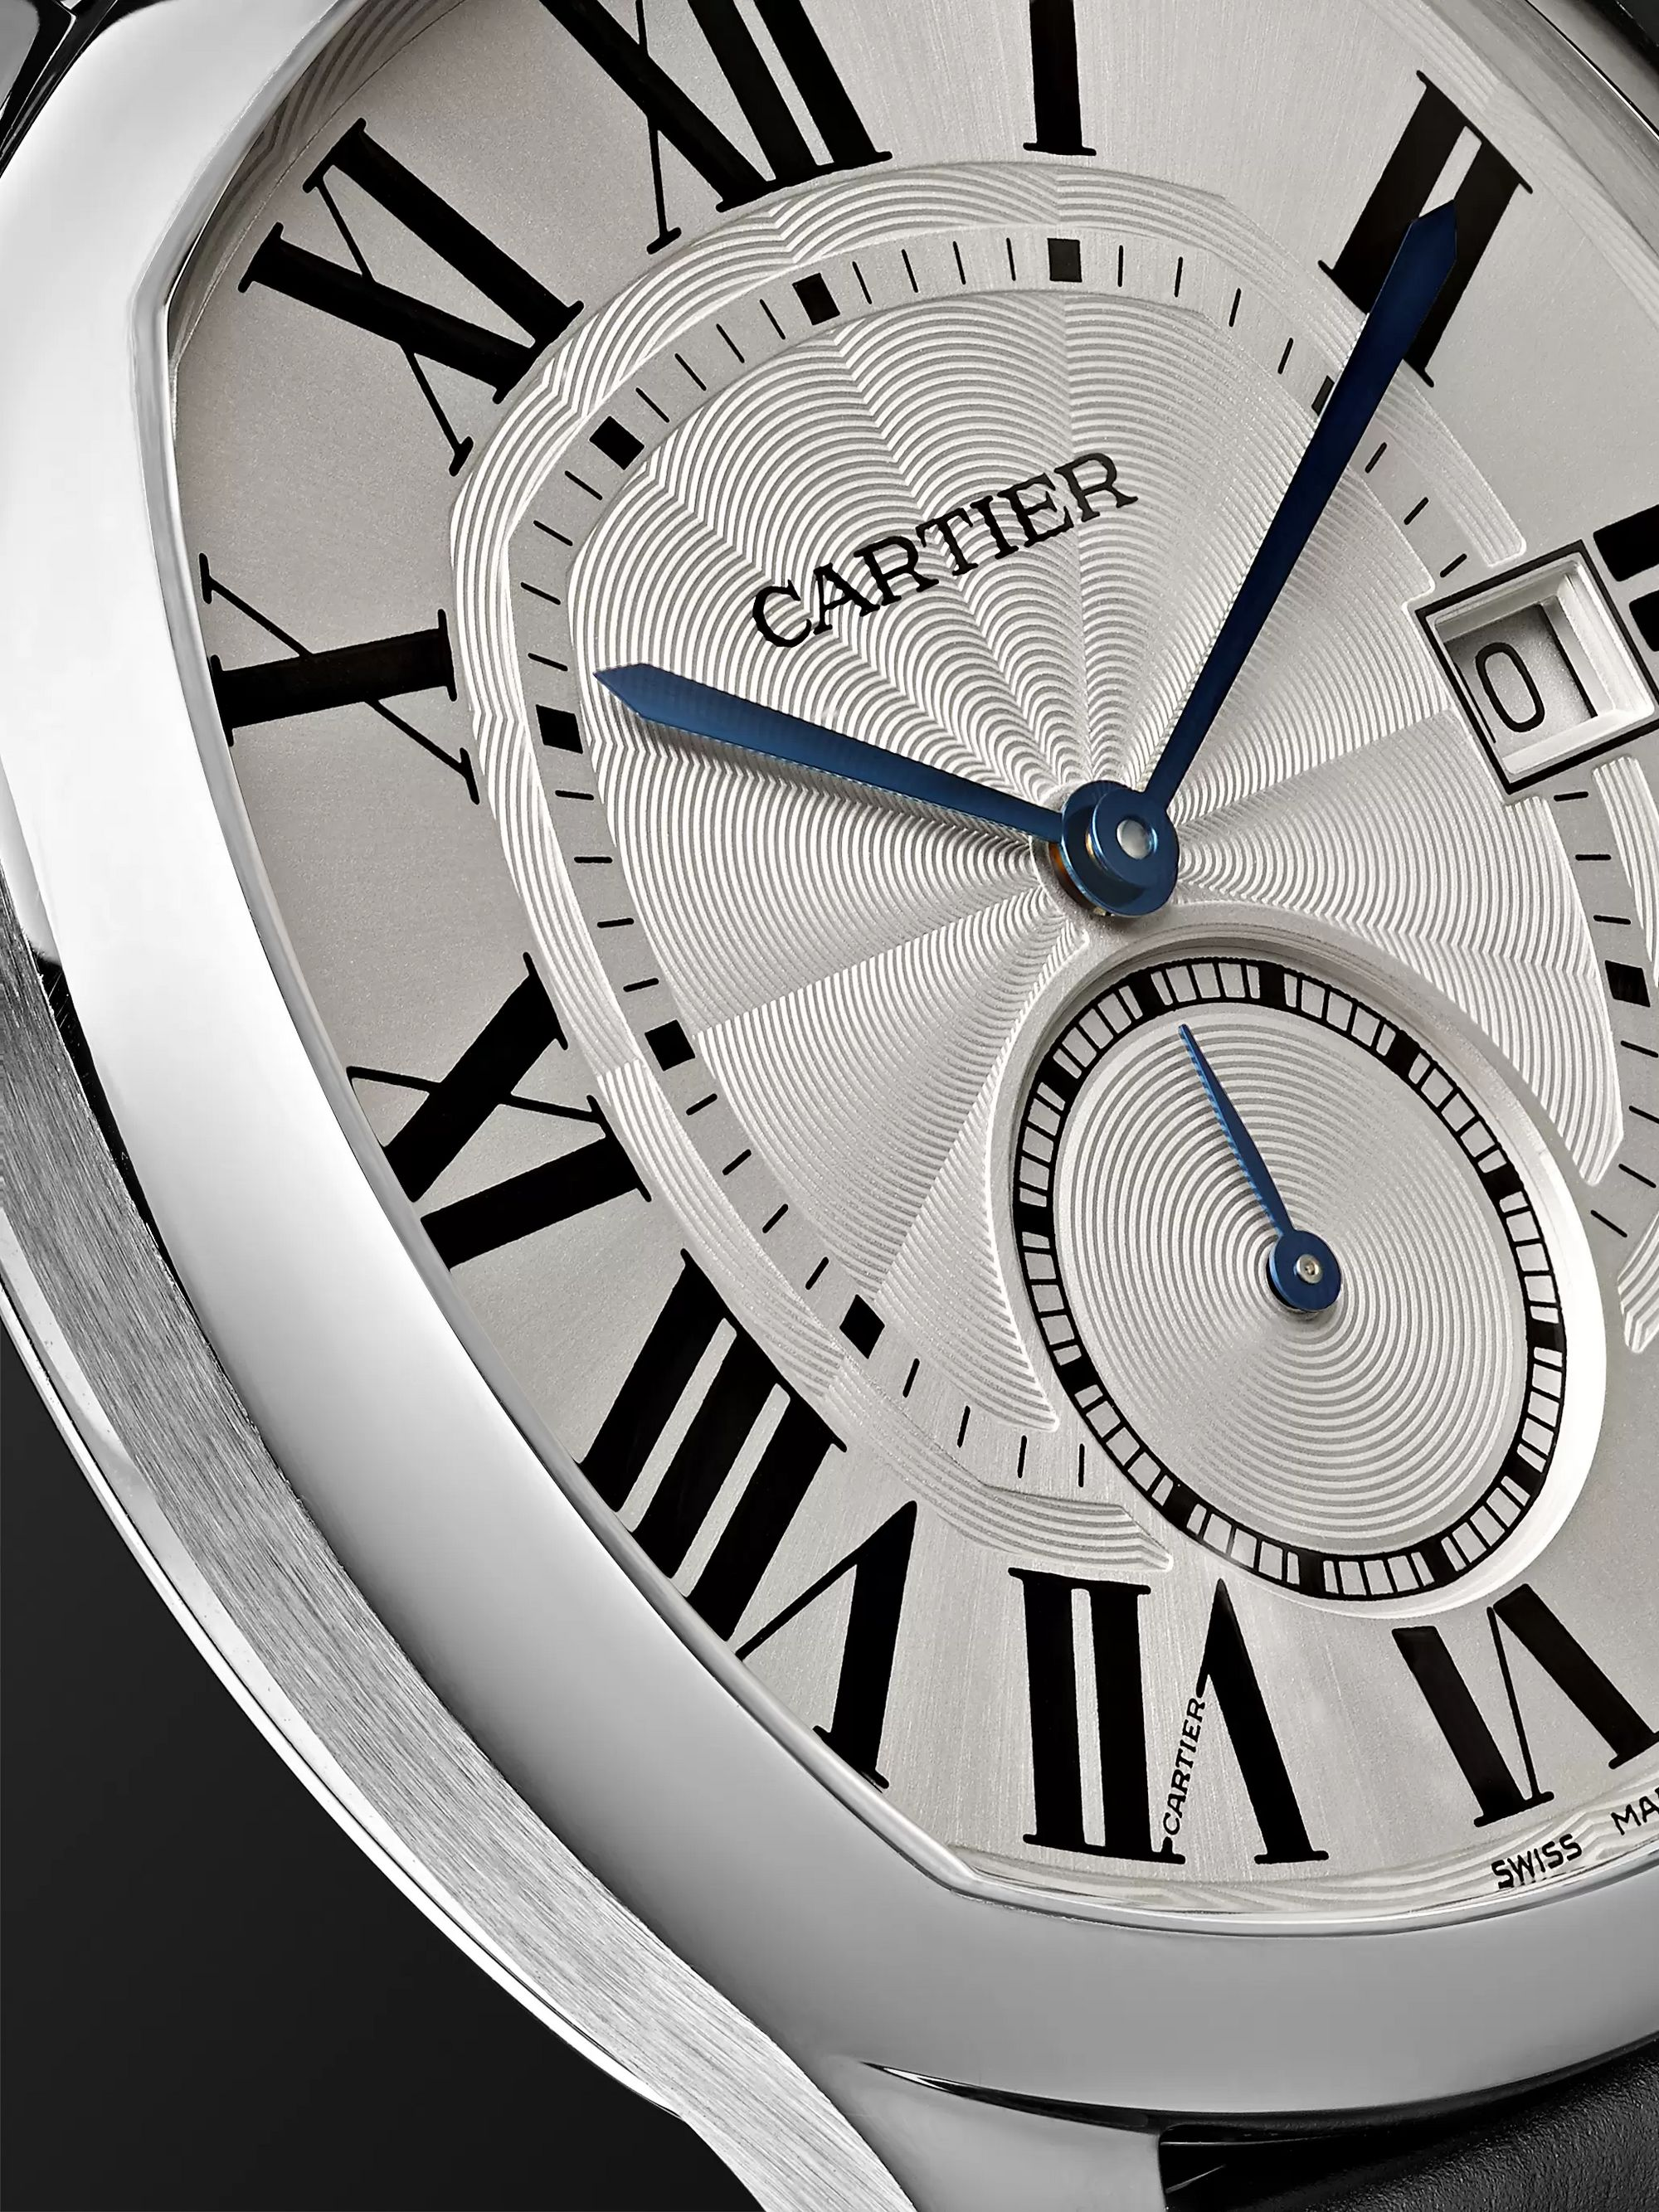 Cartier Drive de Cartier Automatic 41mm Steel and Alligator Watch, Ref. No. CRWSNM0004